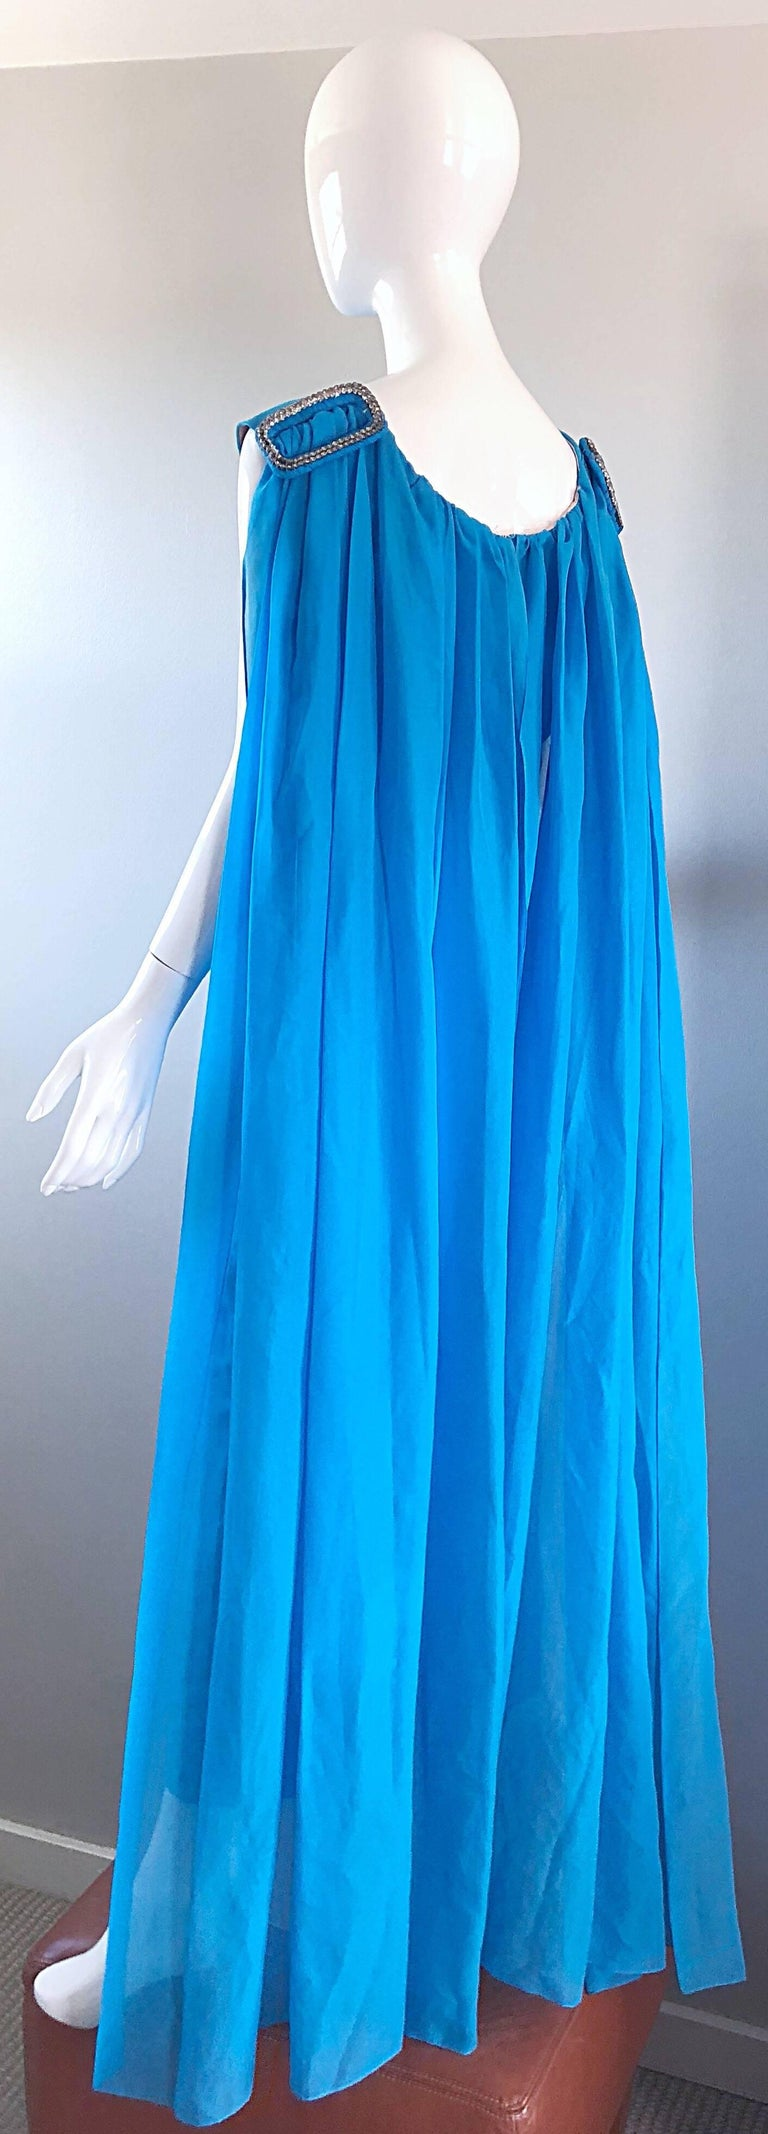 Incredible 1960s Turquoise Blue Chiffon Rhinestone Encrusted Vintage Cape Gown For Sale 3